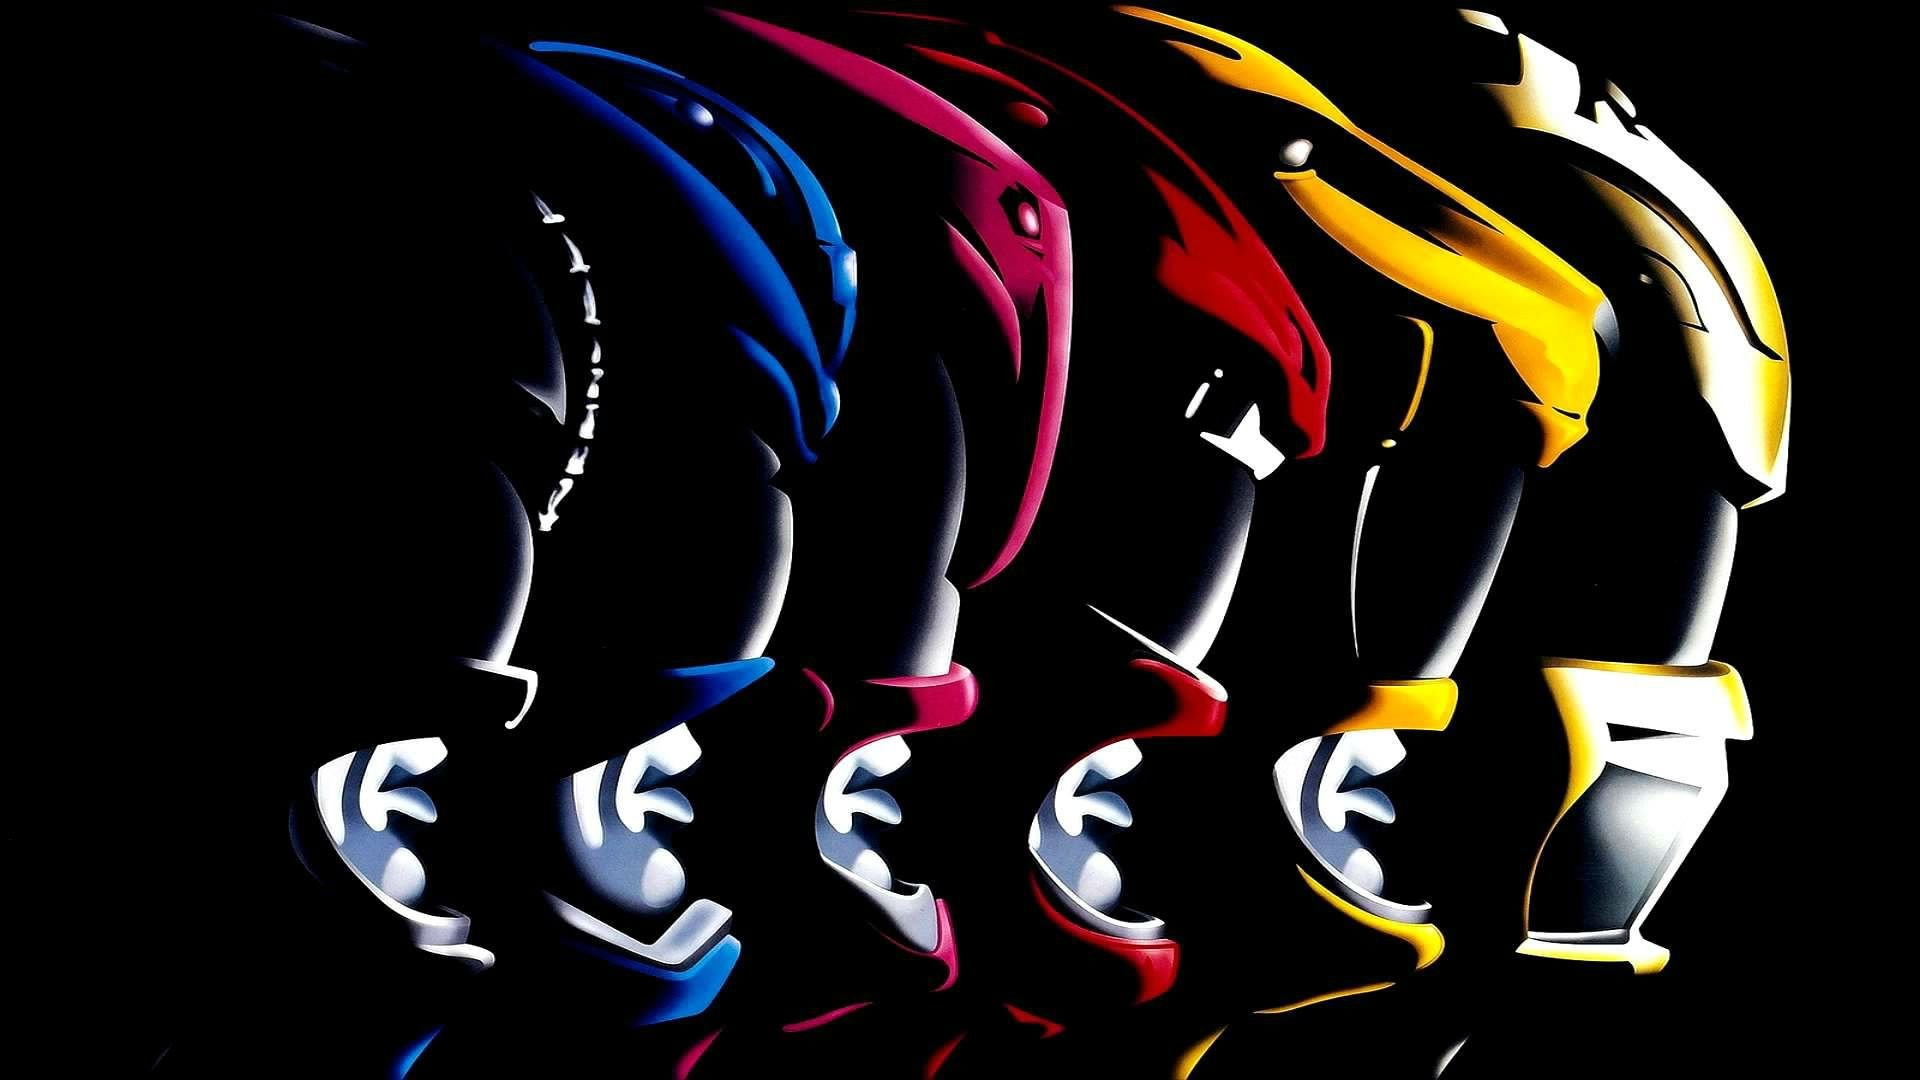 Power Rangers Wallpaper For Iphone 64 Images